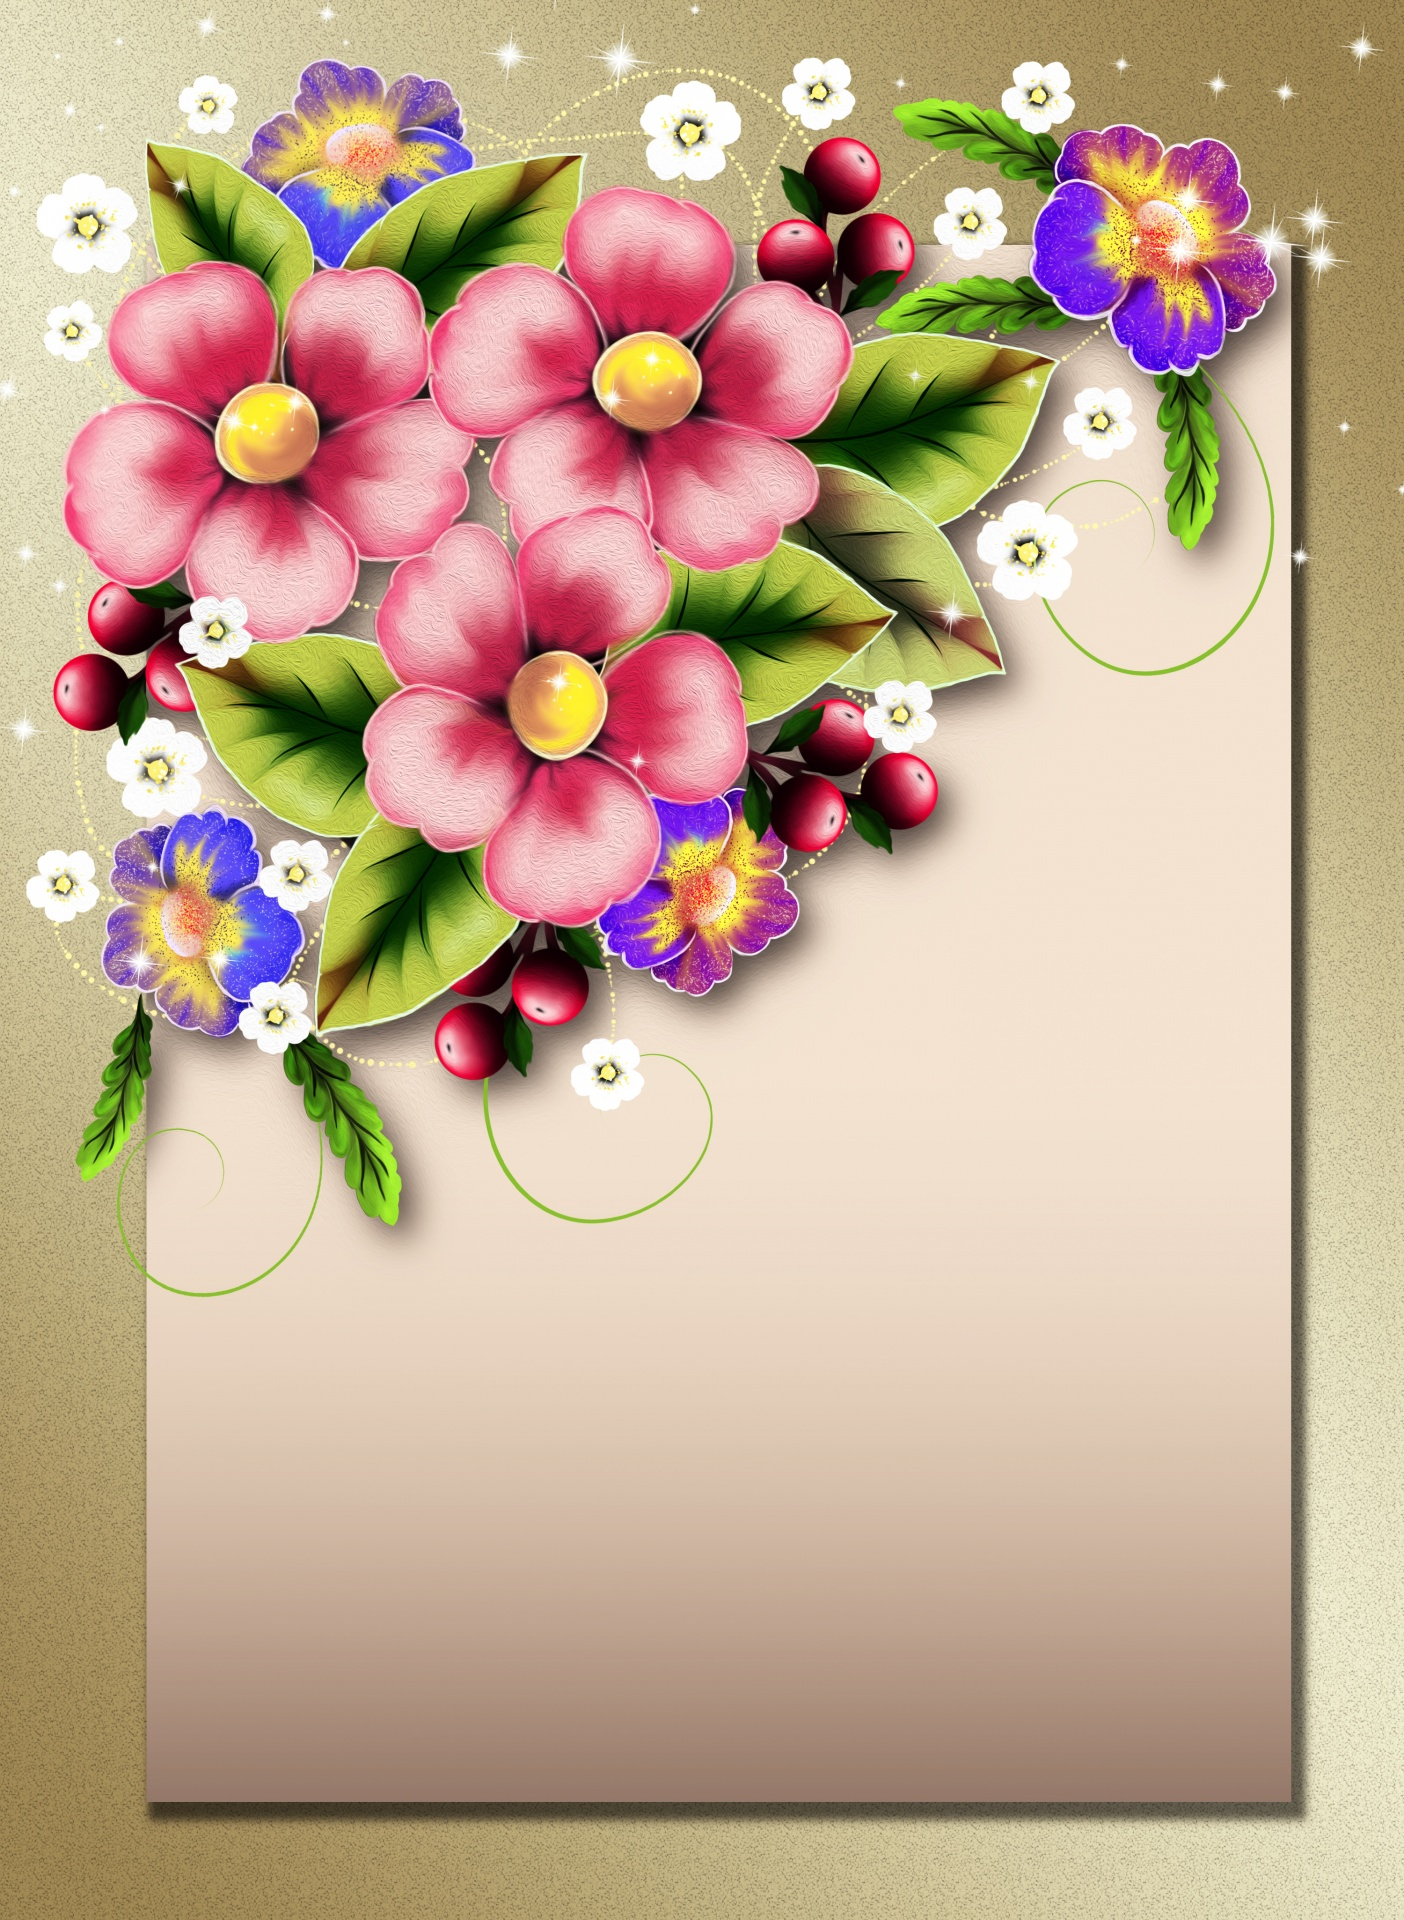 Flower Bouquet Drawing Background Paper Free Image From Needpix Com